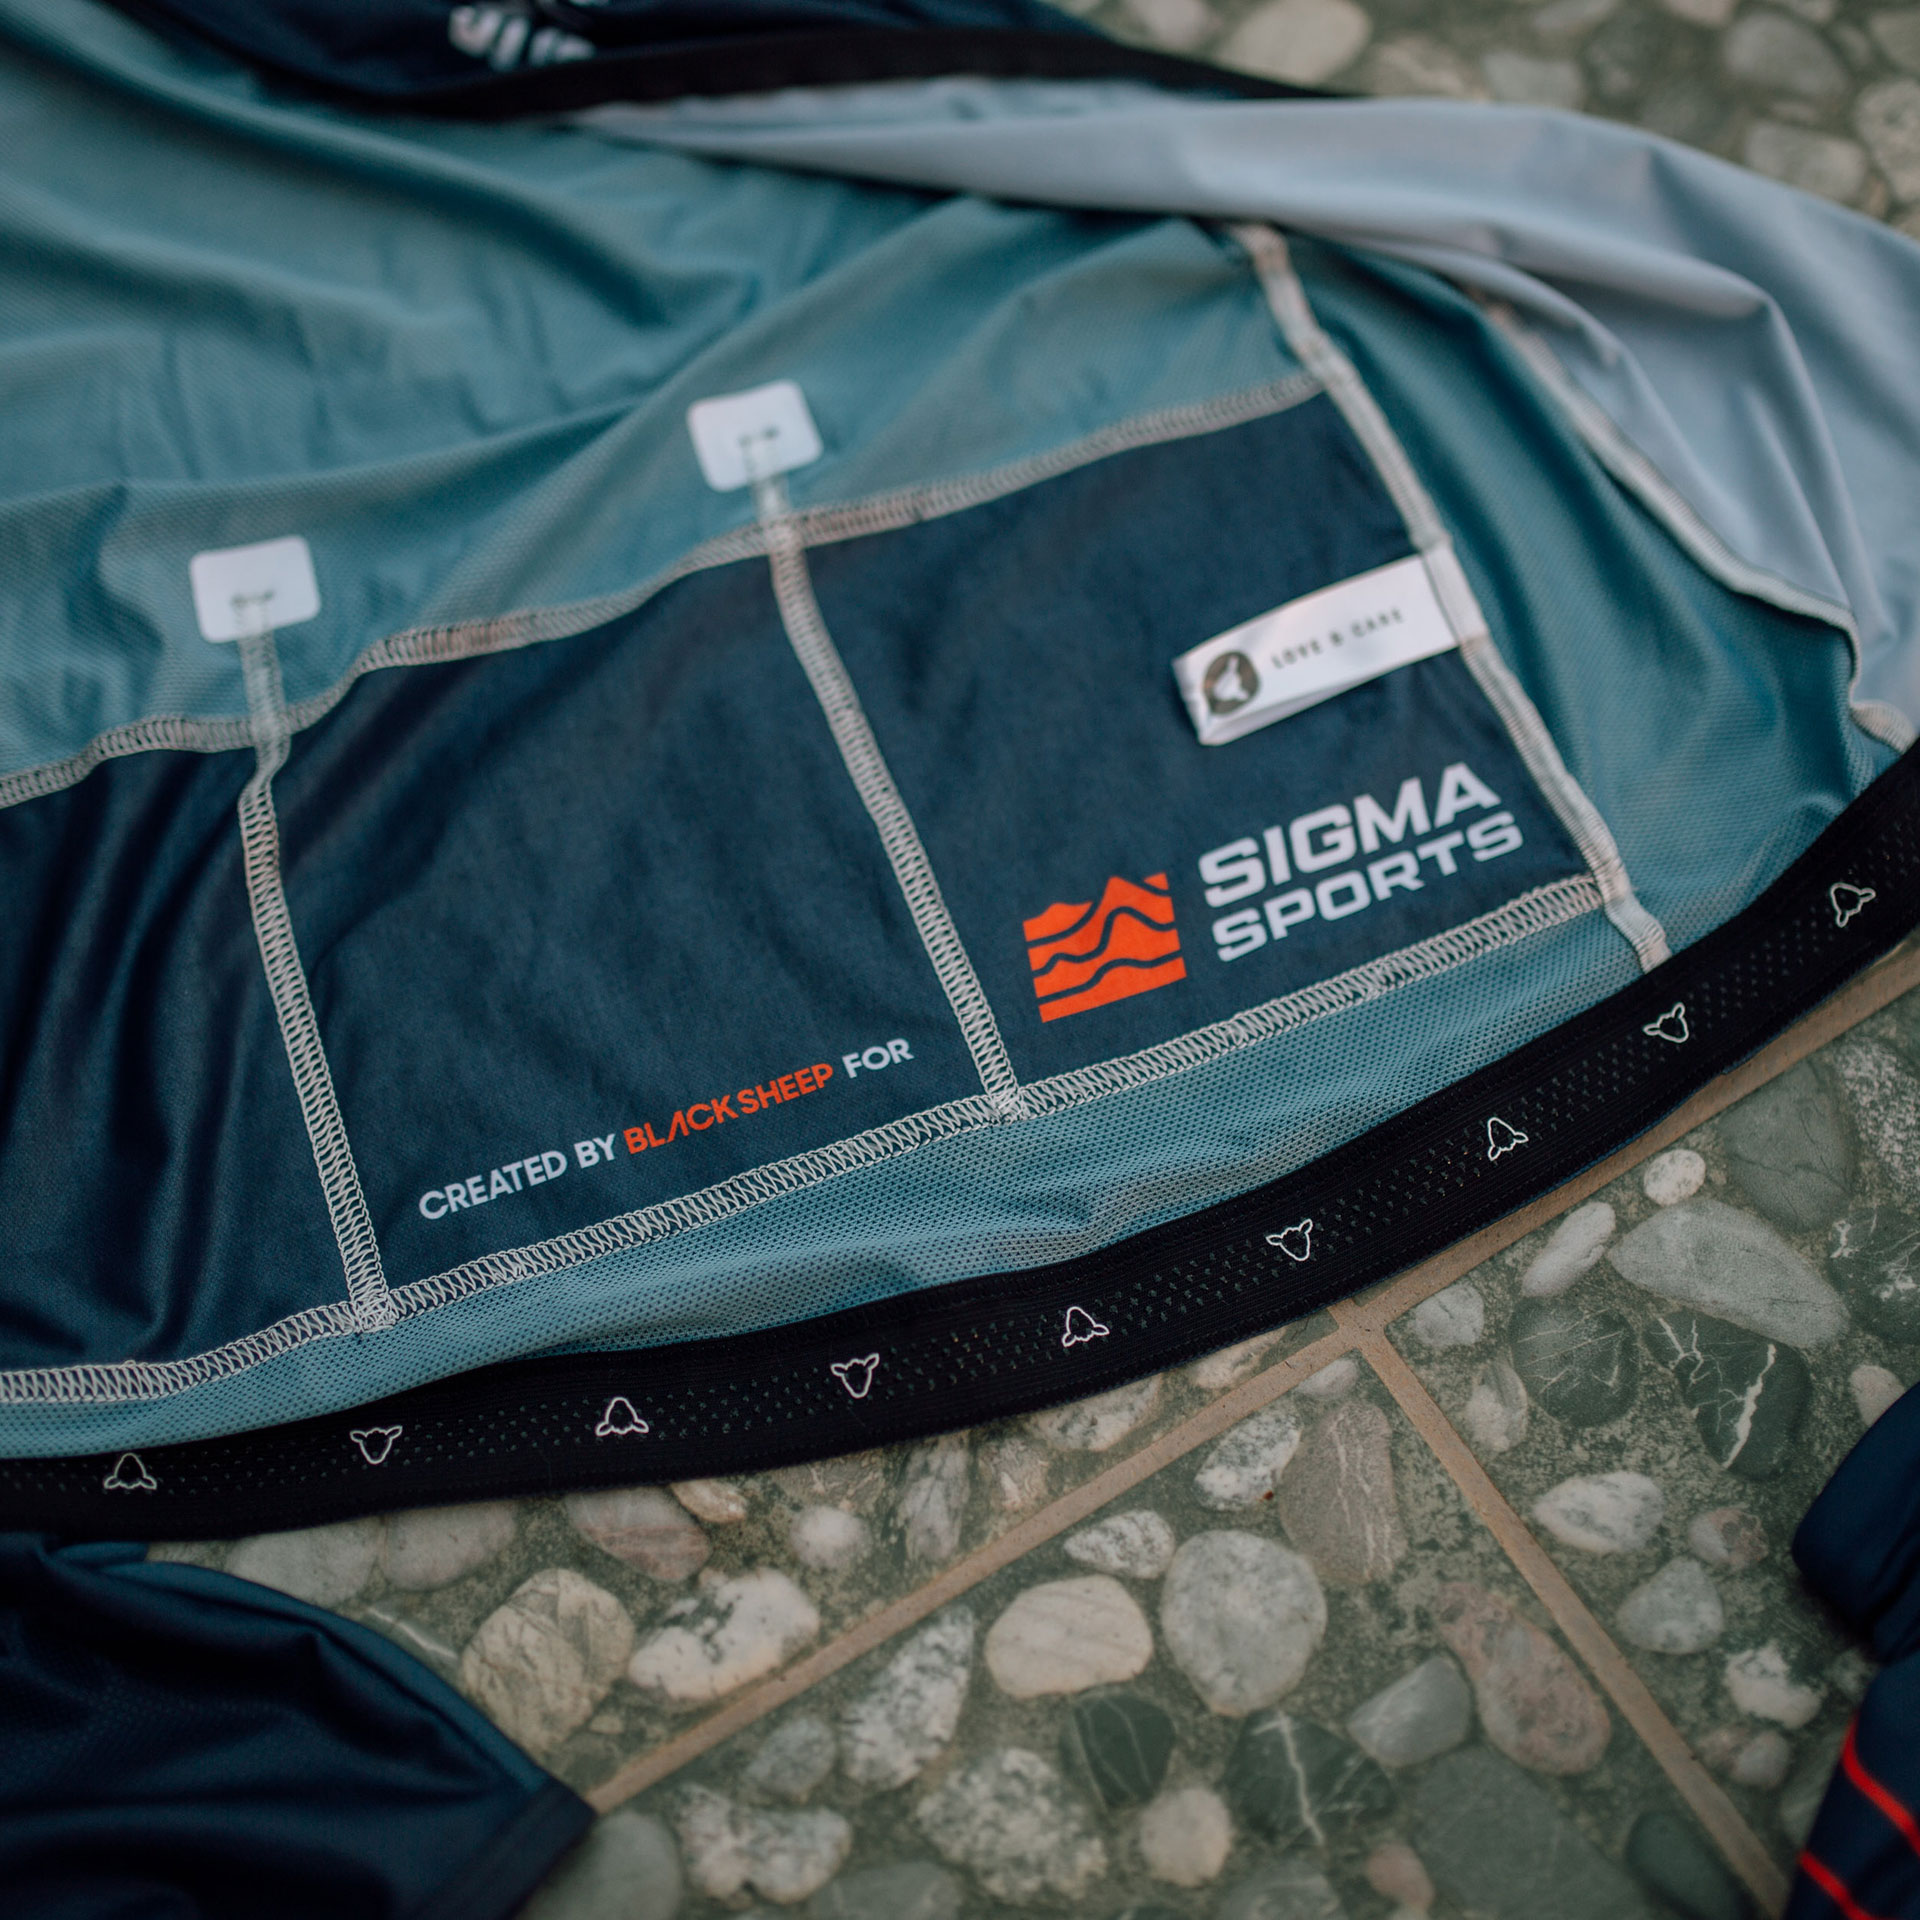 Sigma Sports Kit in conjunction with Black Sheep Cycling